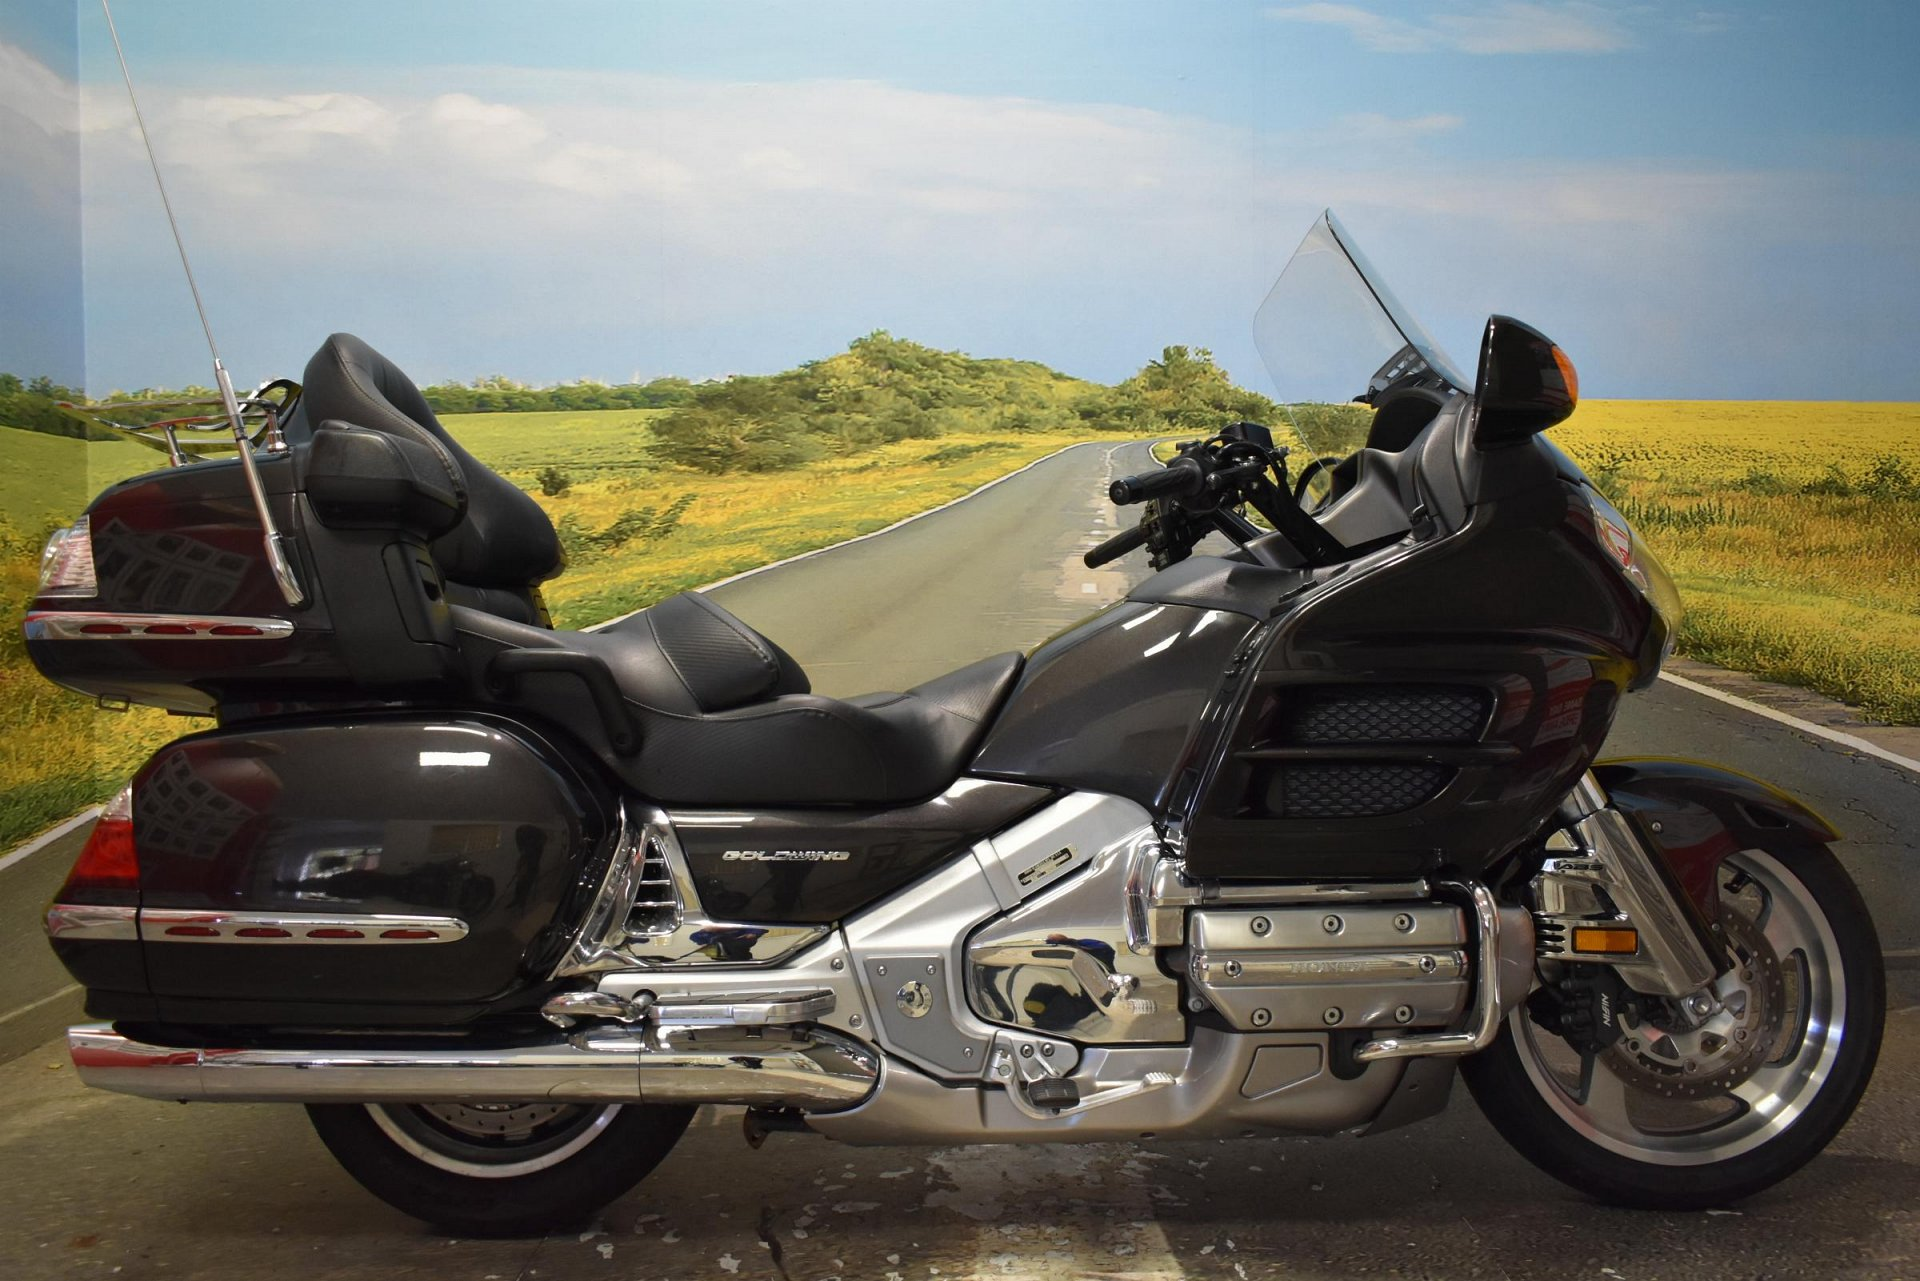 2011 Honda GL 1800 Goldwing for sale in Derbyshire